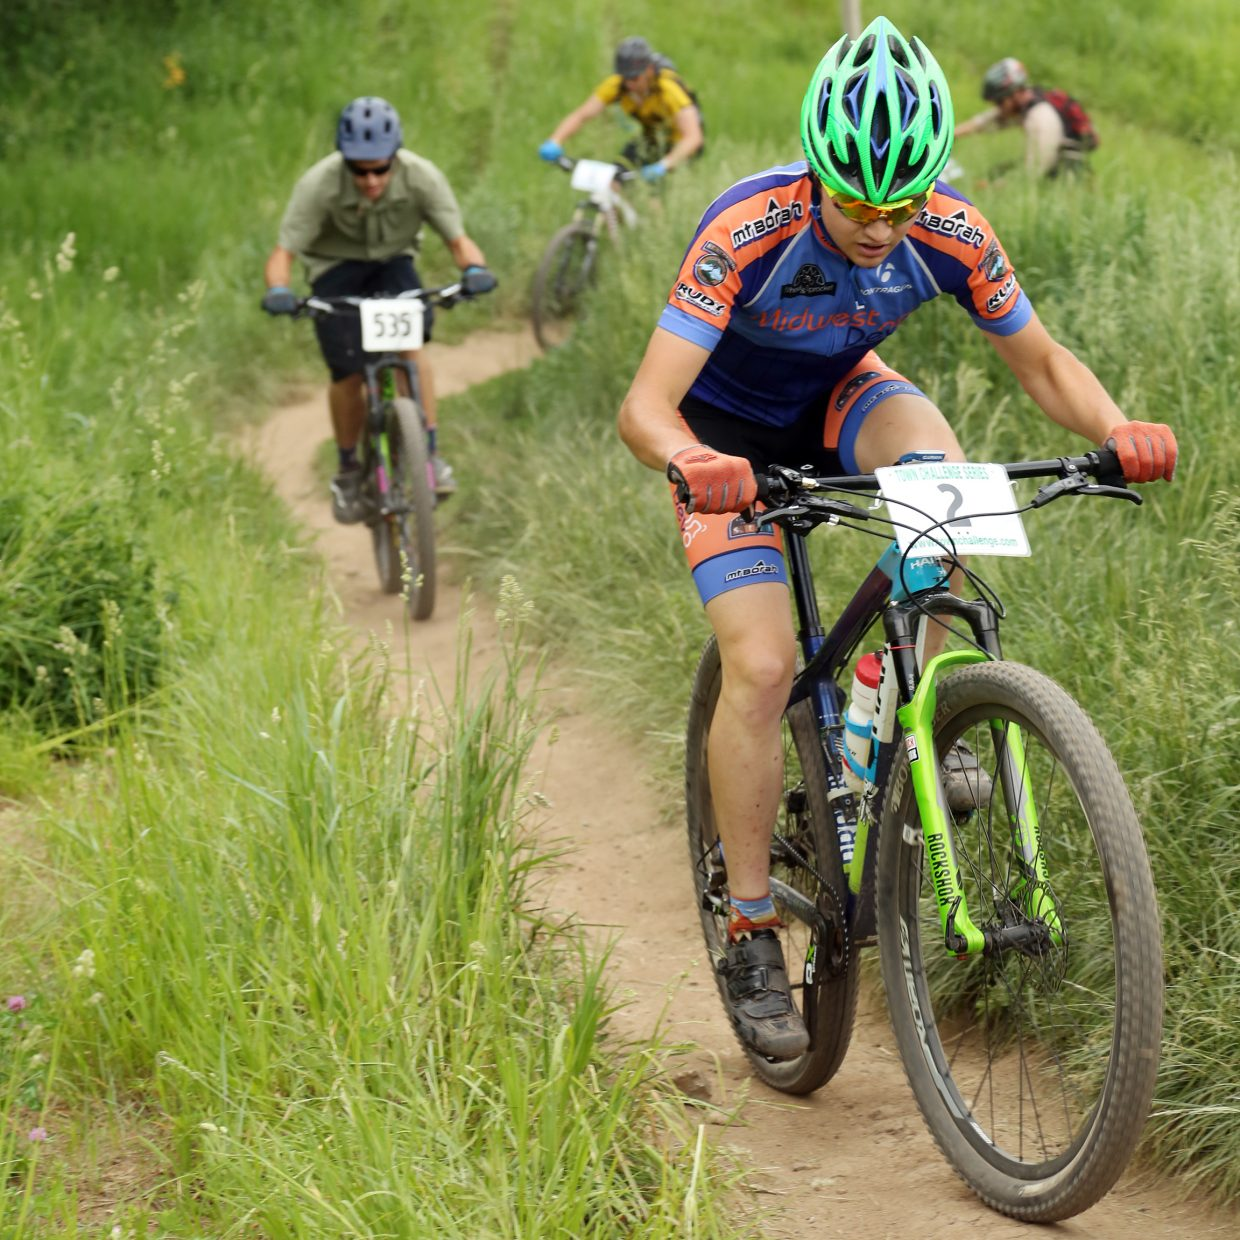 Alex Schultz, right, competes in the men's expert 19 to 34 division of the Emerald Envy XC Town Challenge mountain bike race on June 24, 2015, at Emerald Mountain in Steamboat Springs.